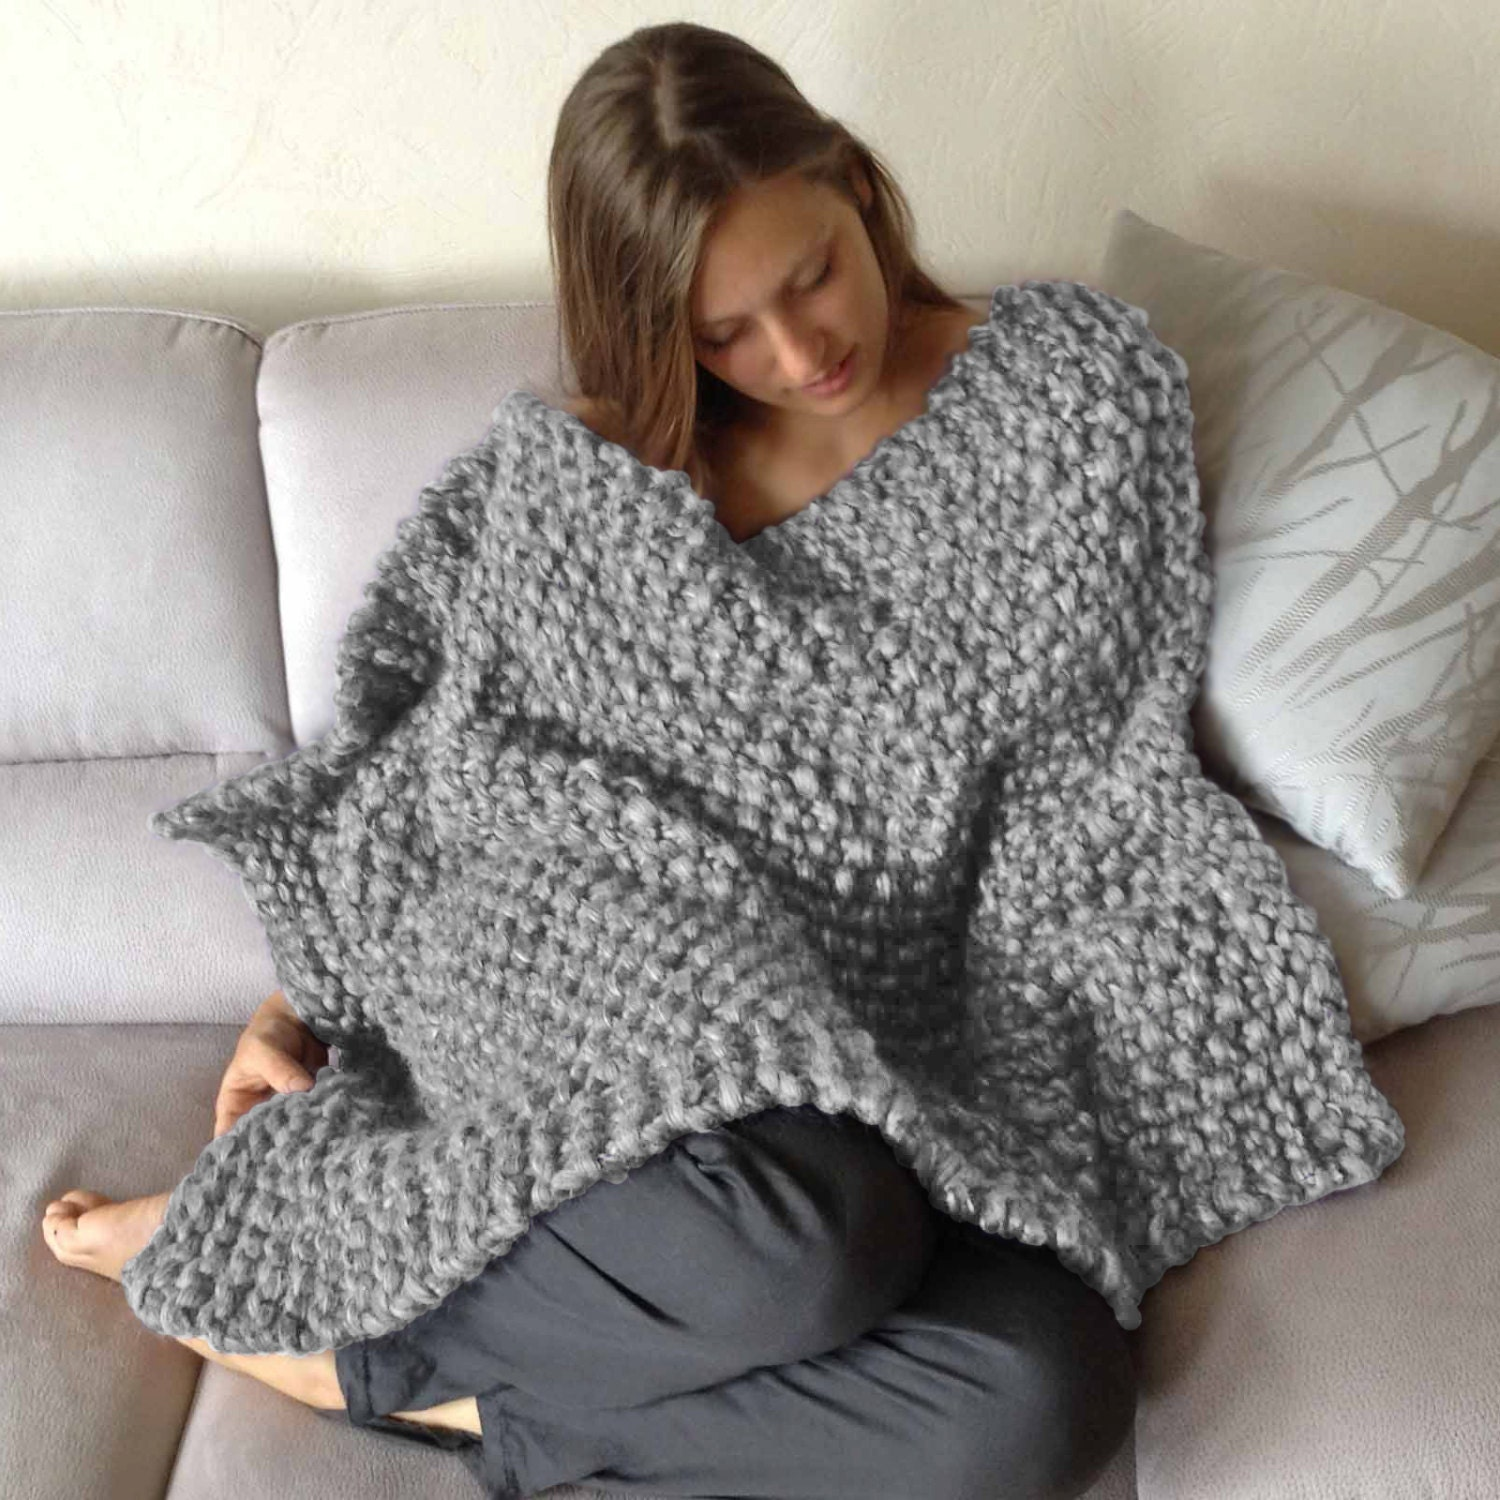 Knitting Pattern Wool Kits : Chunky Wool Blanket KNITTING KIT. Super Bulky Merino Tencel